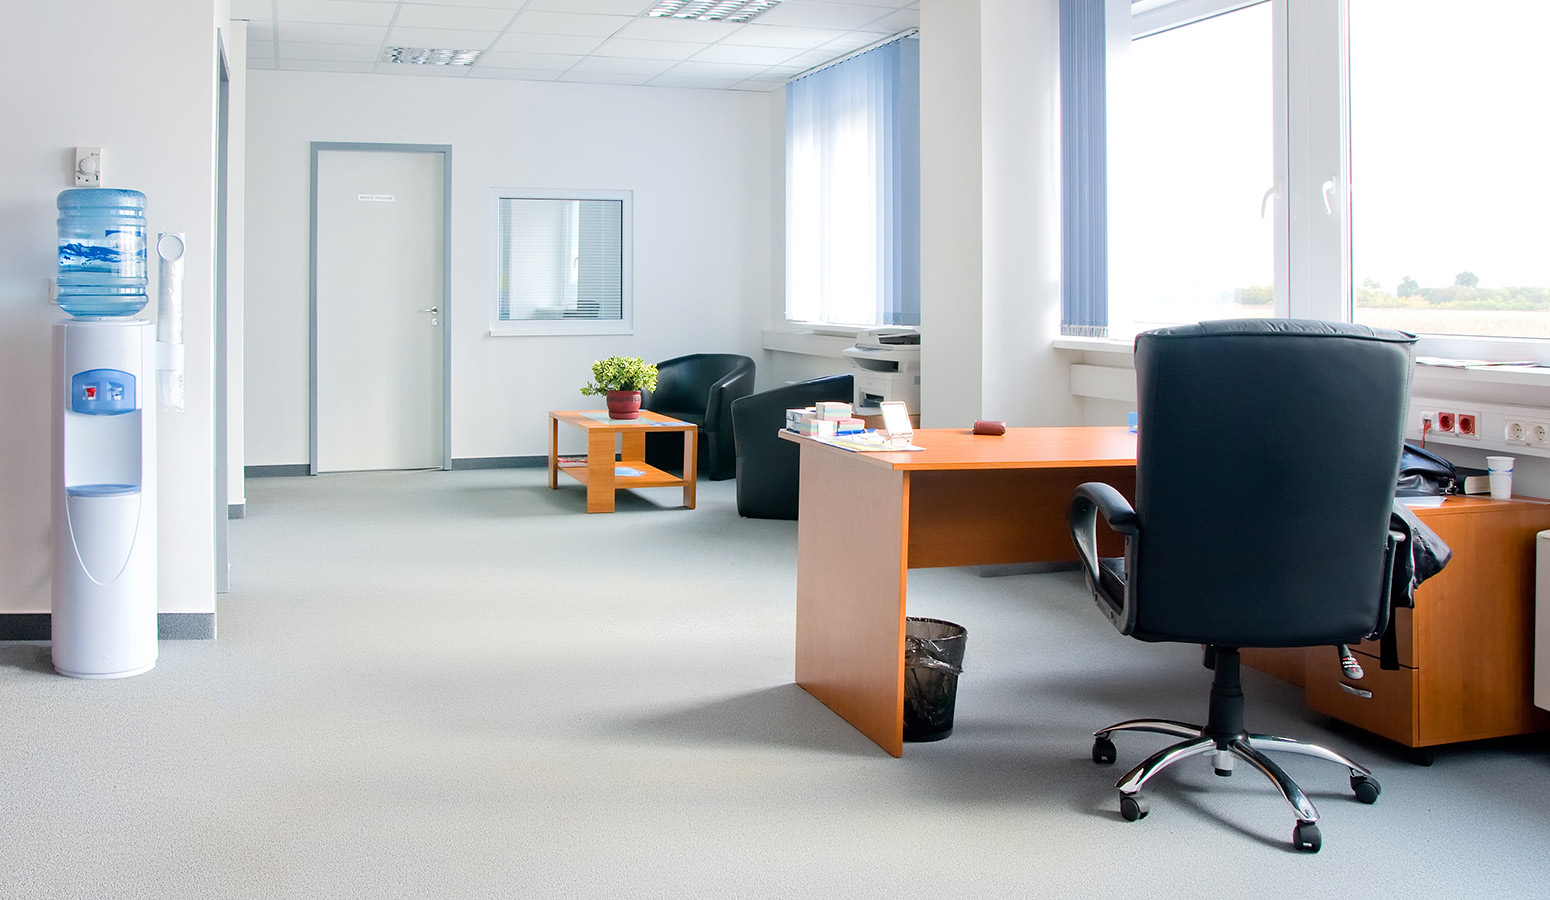 commercial-cleaning-services-in-chicago-suburbs